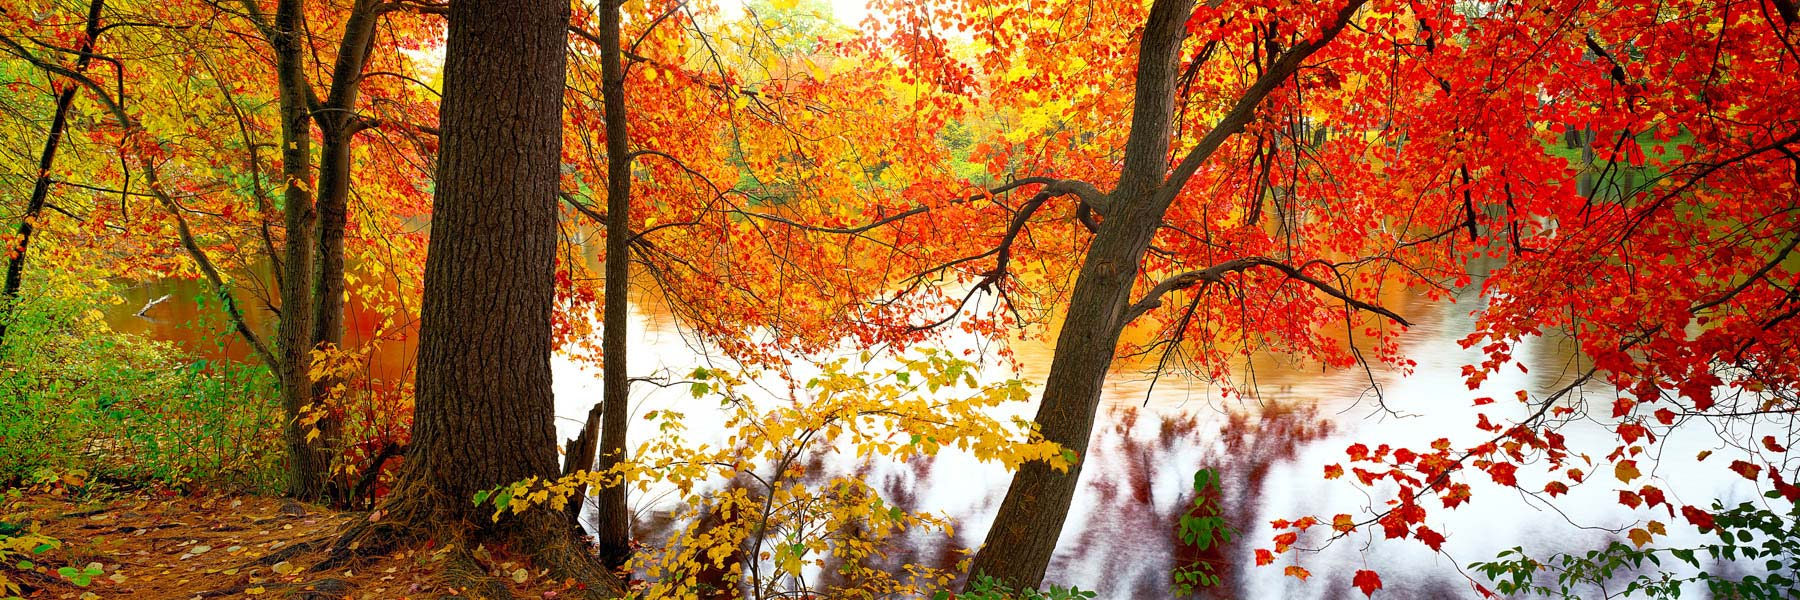 Autumn leaves display their brilliance beside a river in Massachusetts, USA.